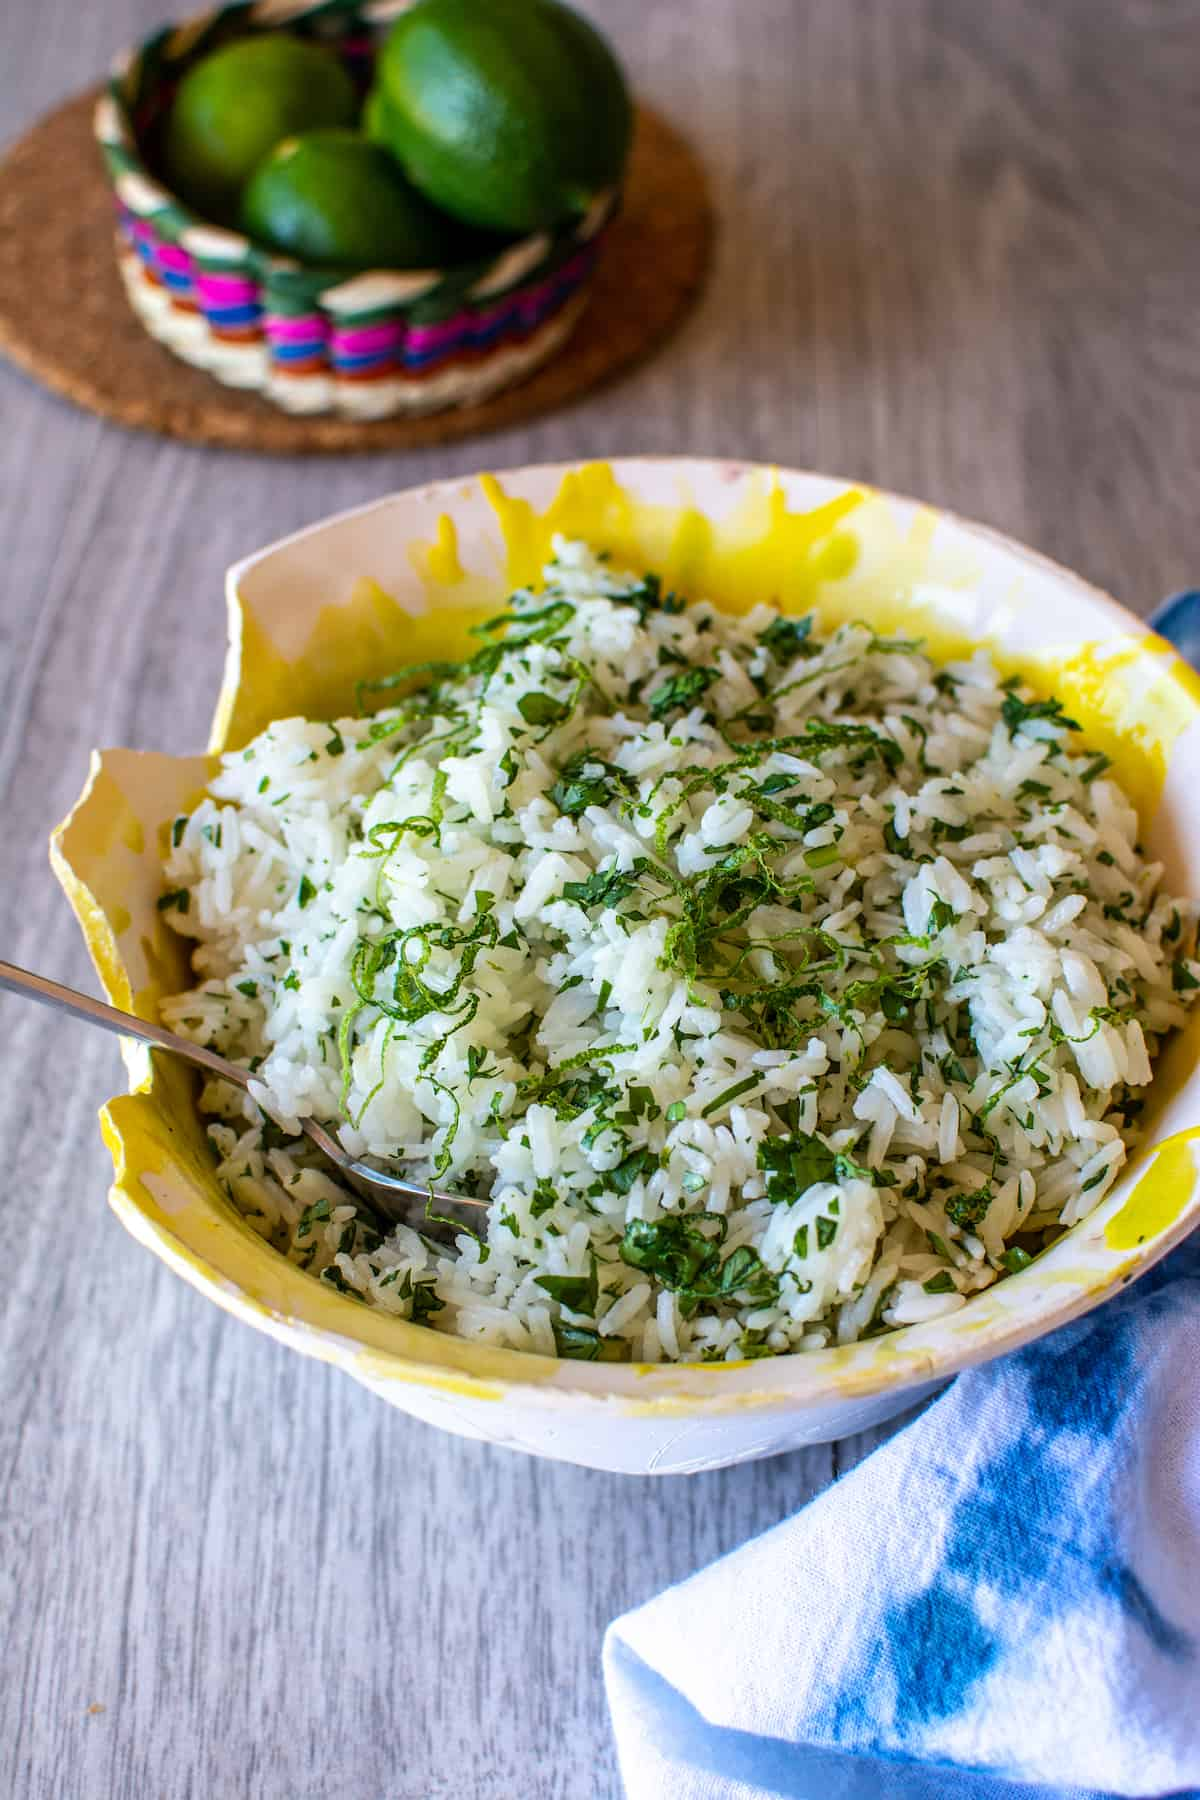 A yellow bowl of cilantro lime rice with a spoon sticking out of one side sitting on a gray table next to a blue and white napkin.